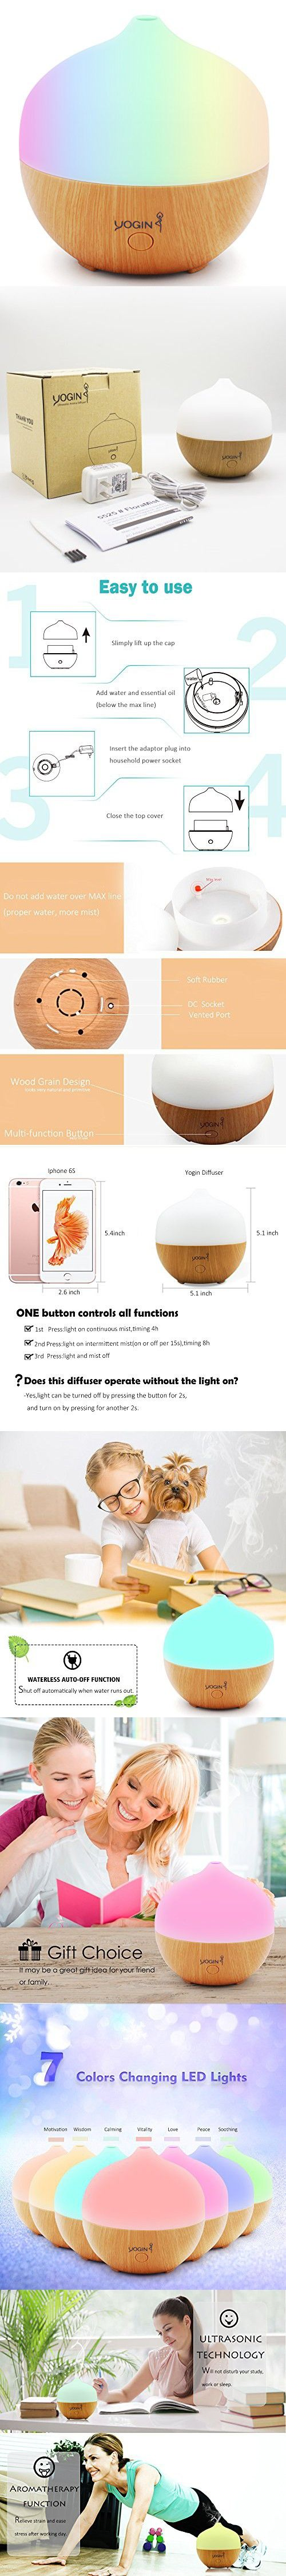 Yogin 130ml Wood Grain Aromatherapy Essential Oil Diffuser Ultrasonic Cool Mist Diffuser with Multi Color LED Light, Waterless Auto Shut-off for Office, Home, Bedroom, Baby Room, Spa, Yoga